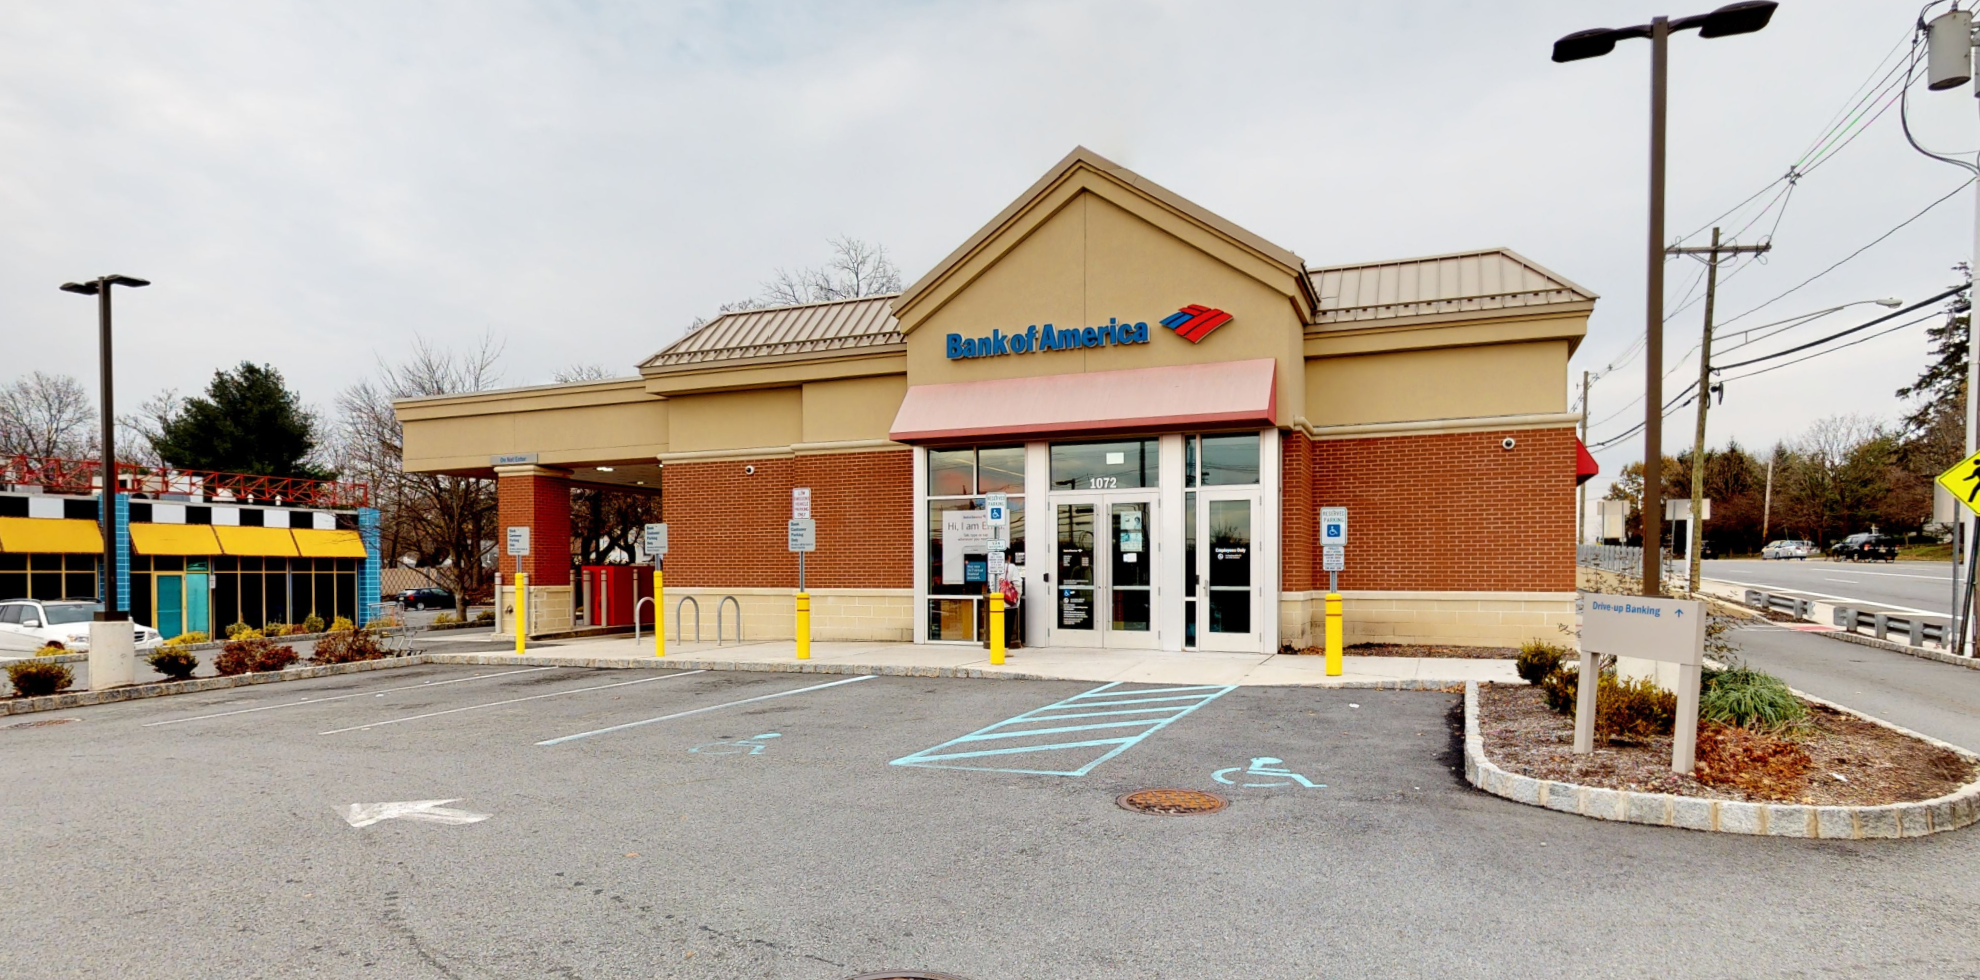 Bank of America financial center with drive-thru ATM   1072 Route 46, Parsippany, NJ 07054